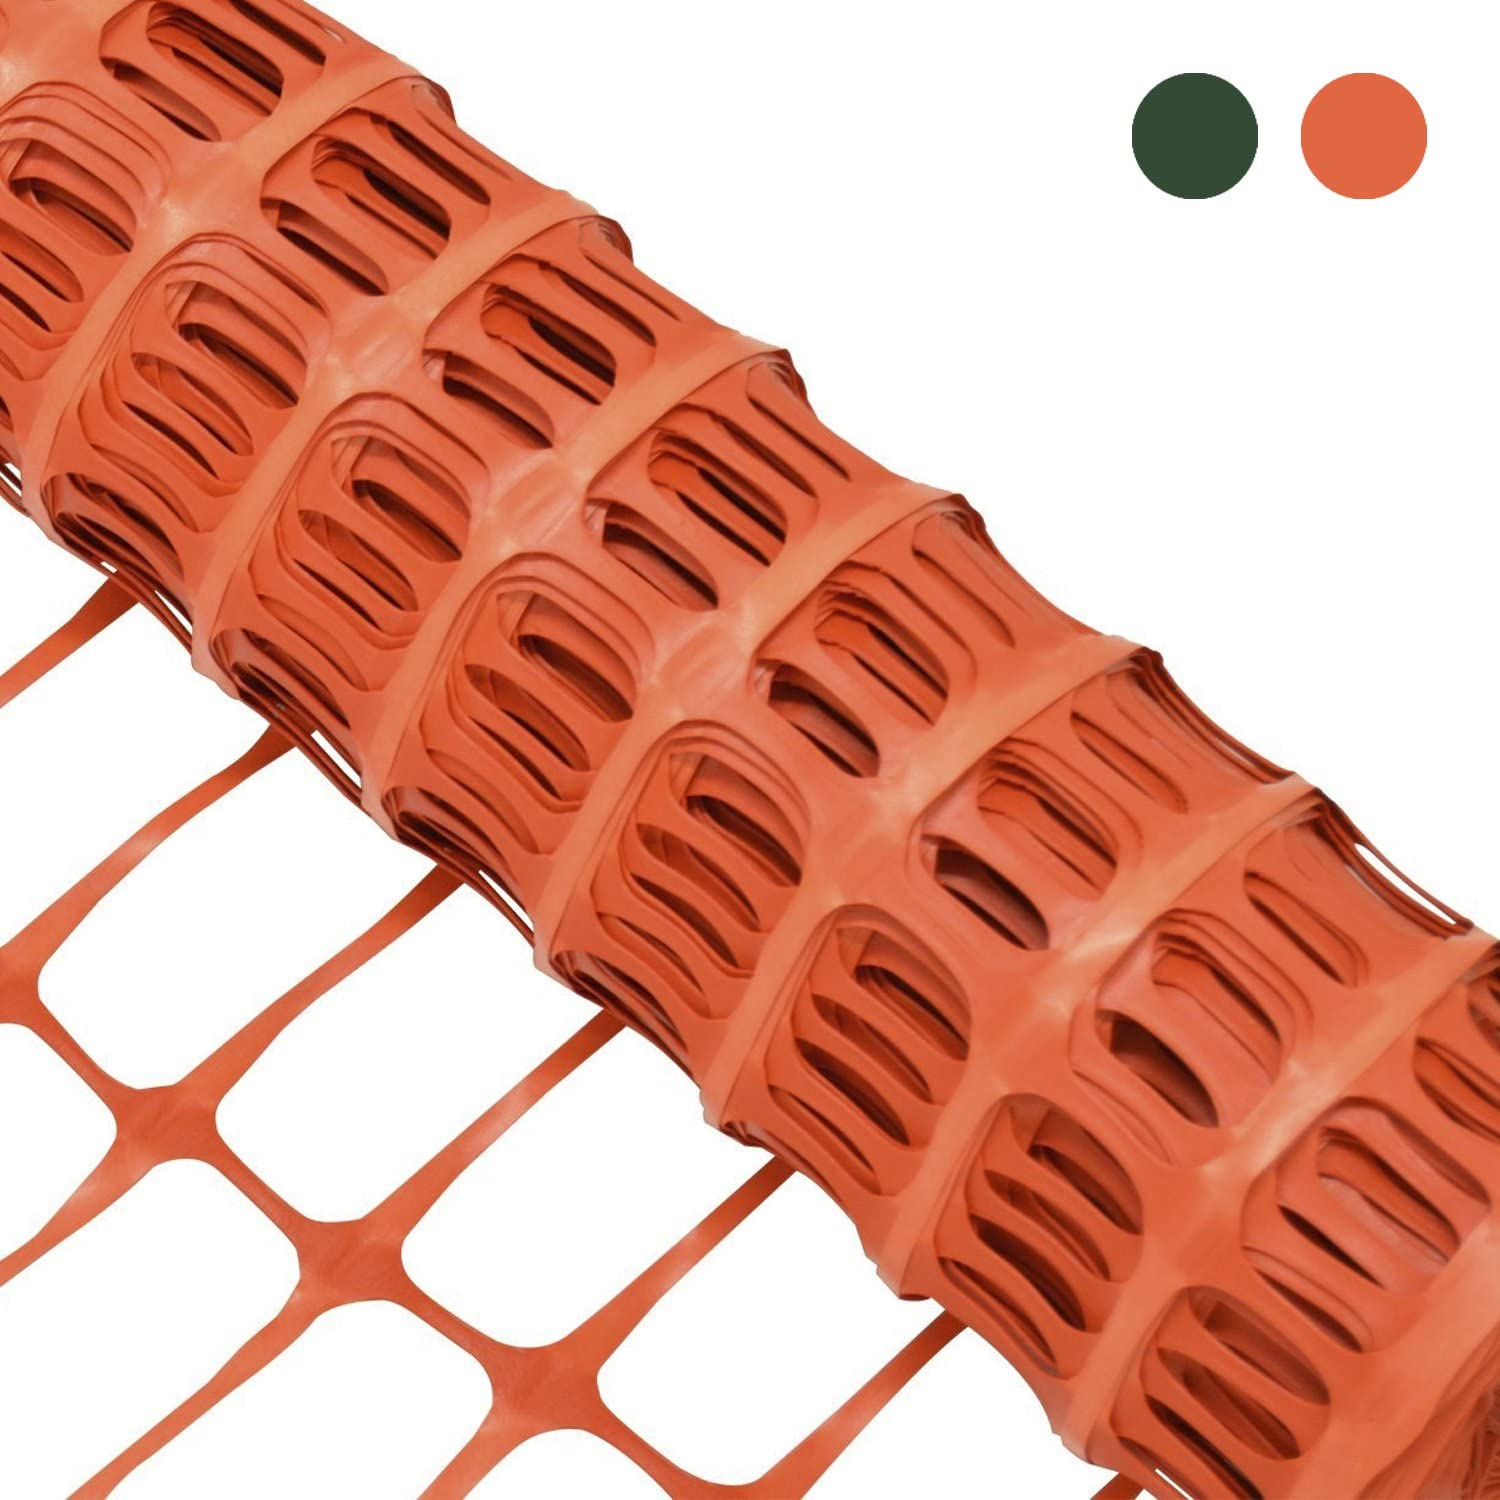 Animaux 3 ft H 1 Filet de s/écurit/é Woodside 49 ft x L 15 m Orange Tissu Mesh//Plastique